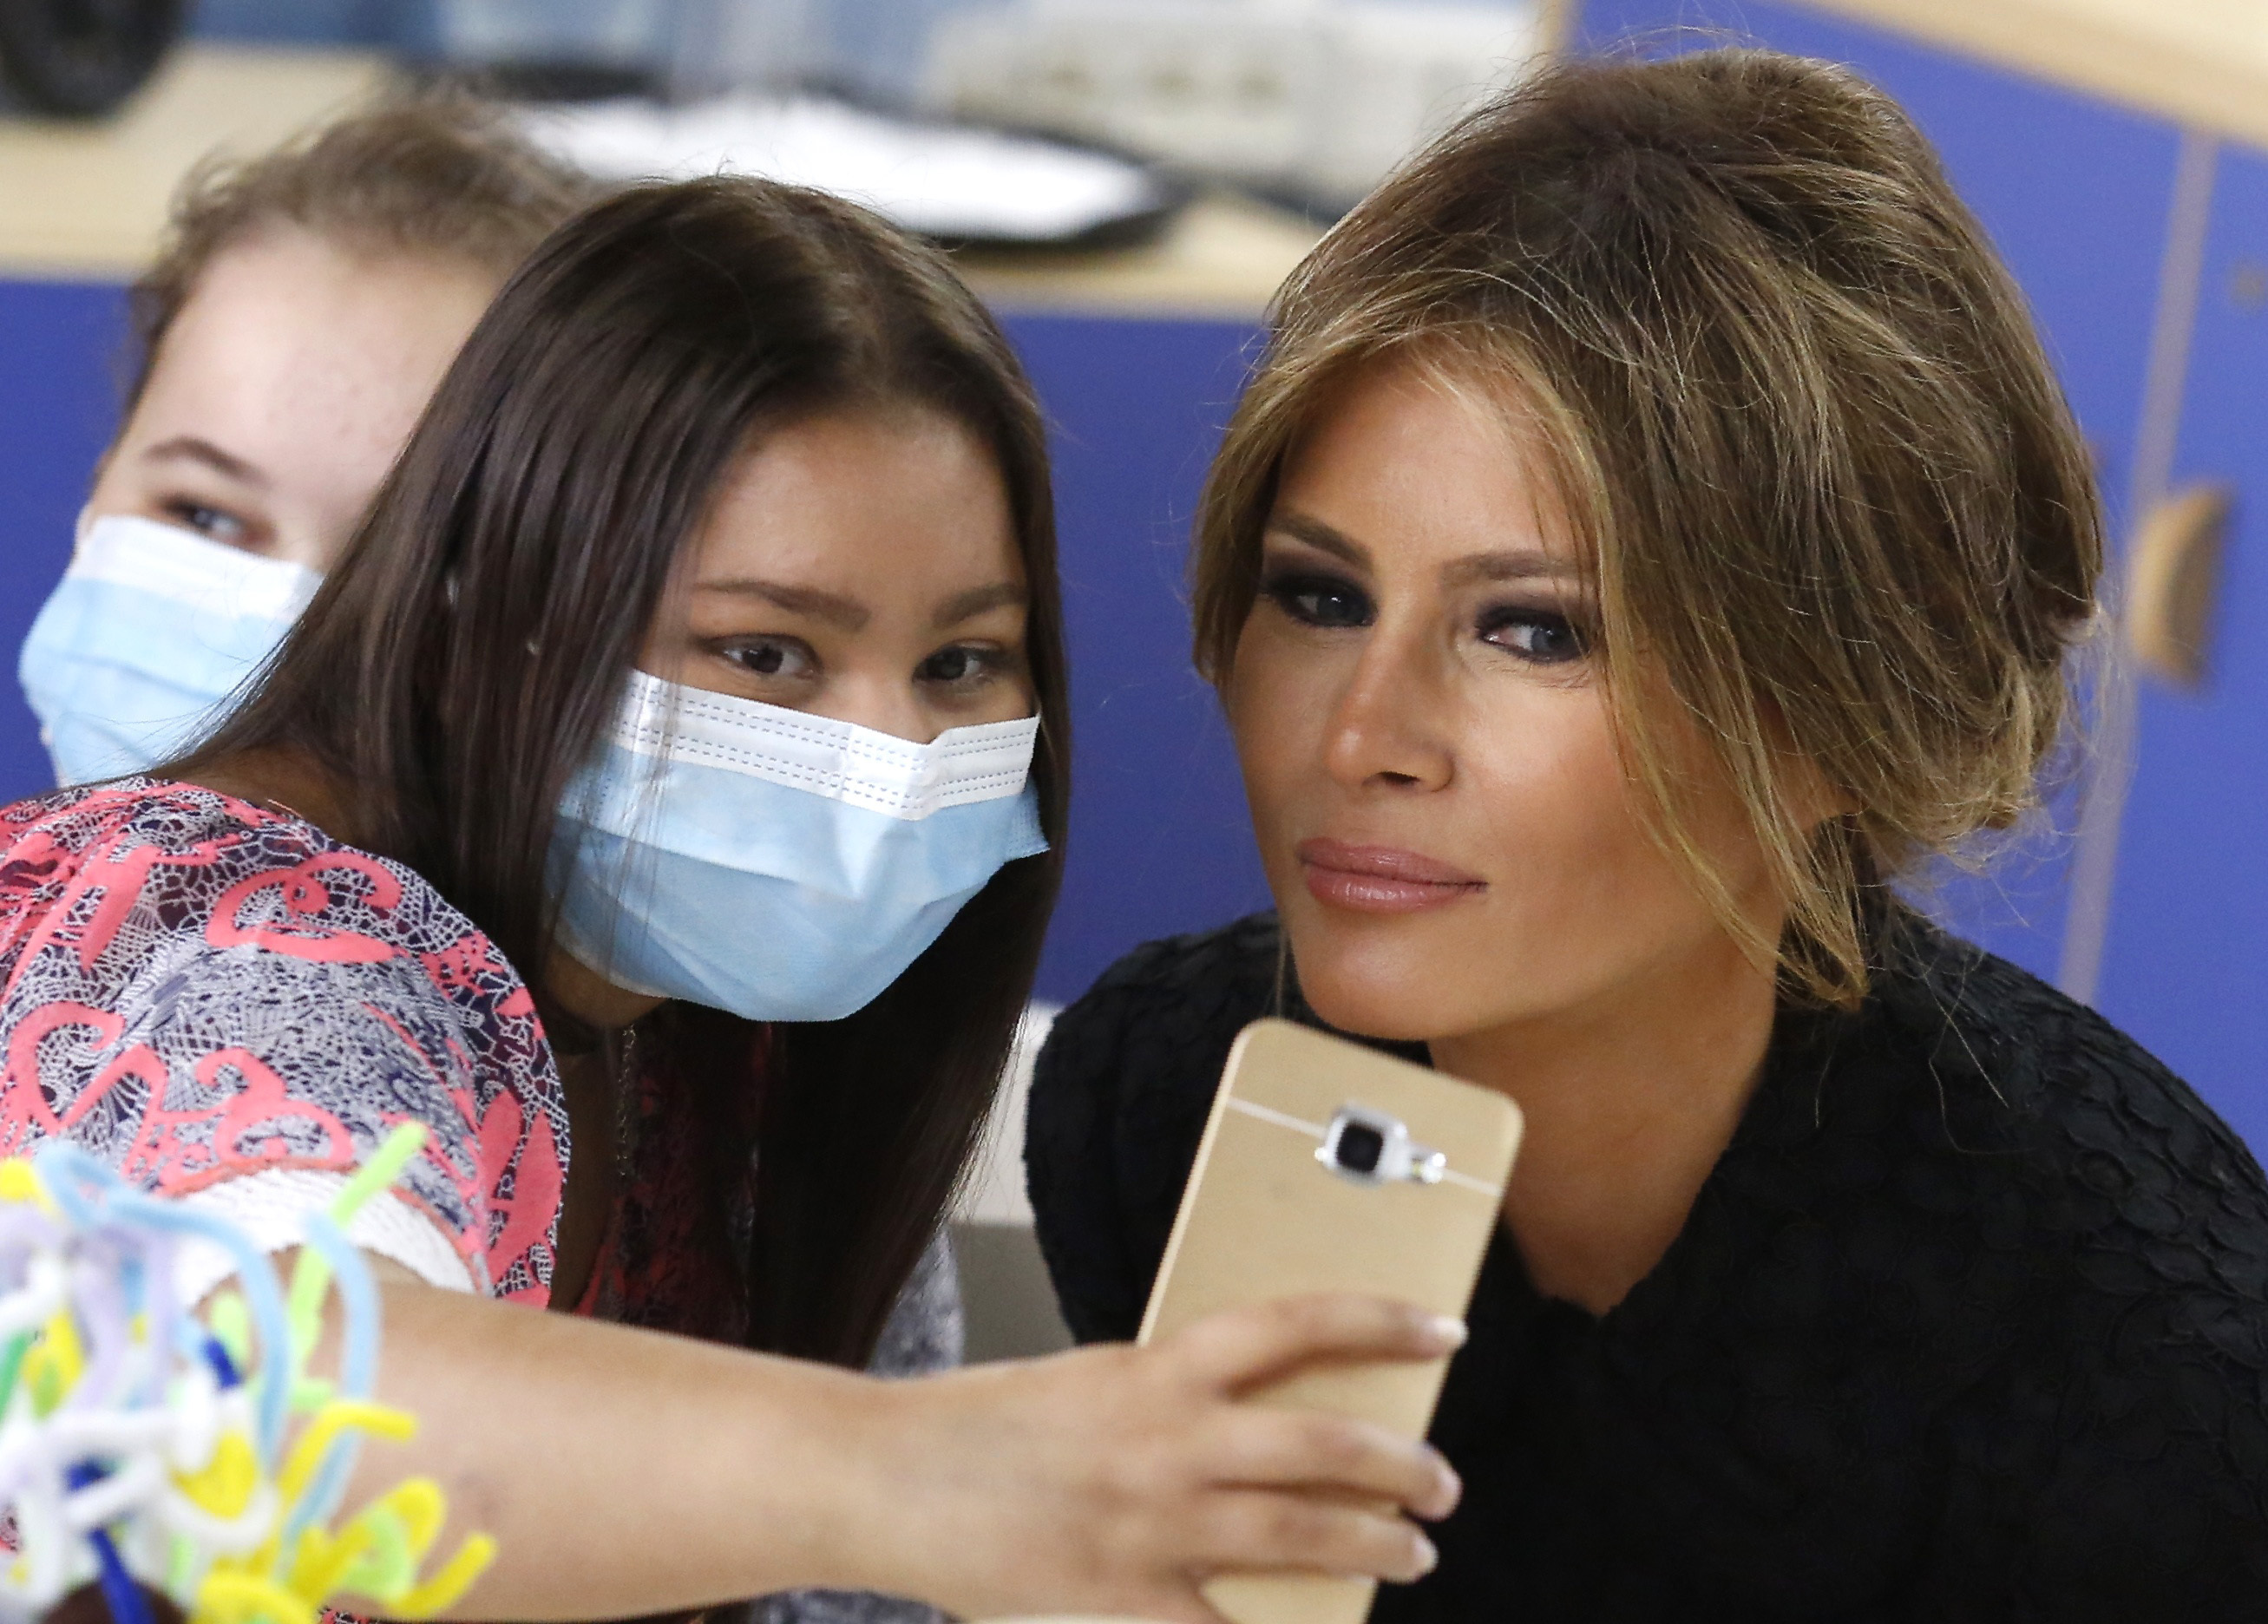 First Lady Melania Trump poses for a selfie with a girl during her visit to the pediatric hospital affiliated with The Vatican. (Remo Casilli/Pool Photo via AP)